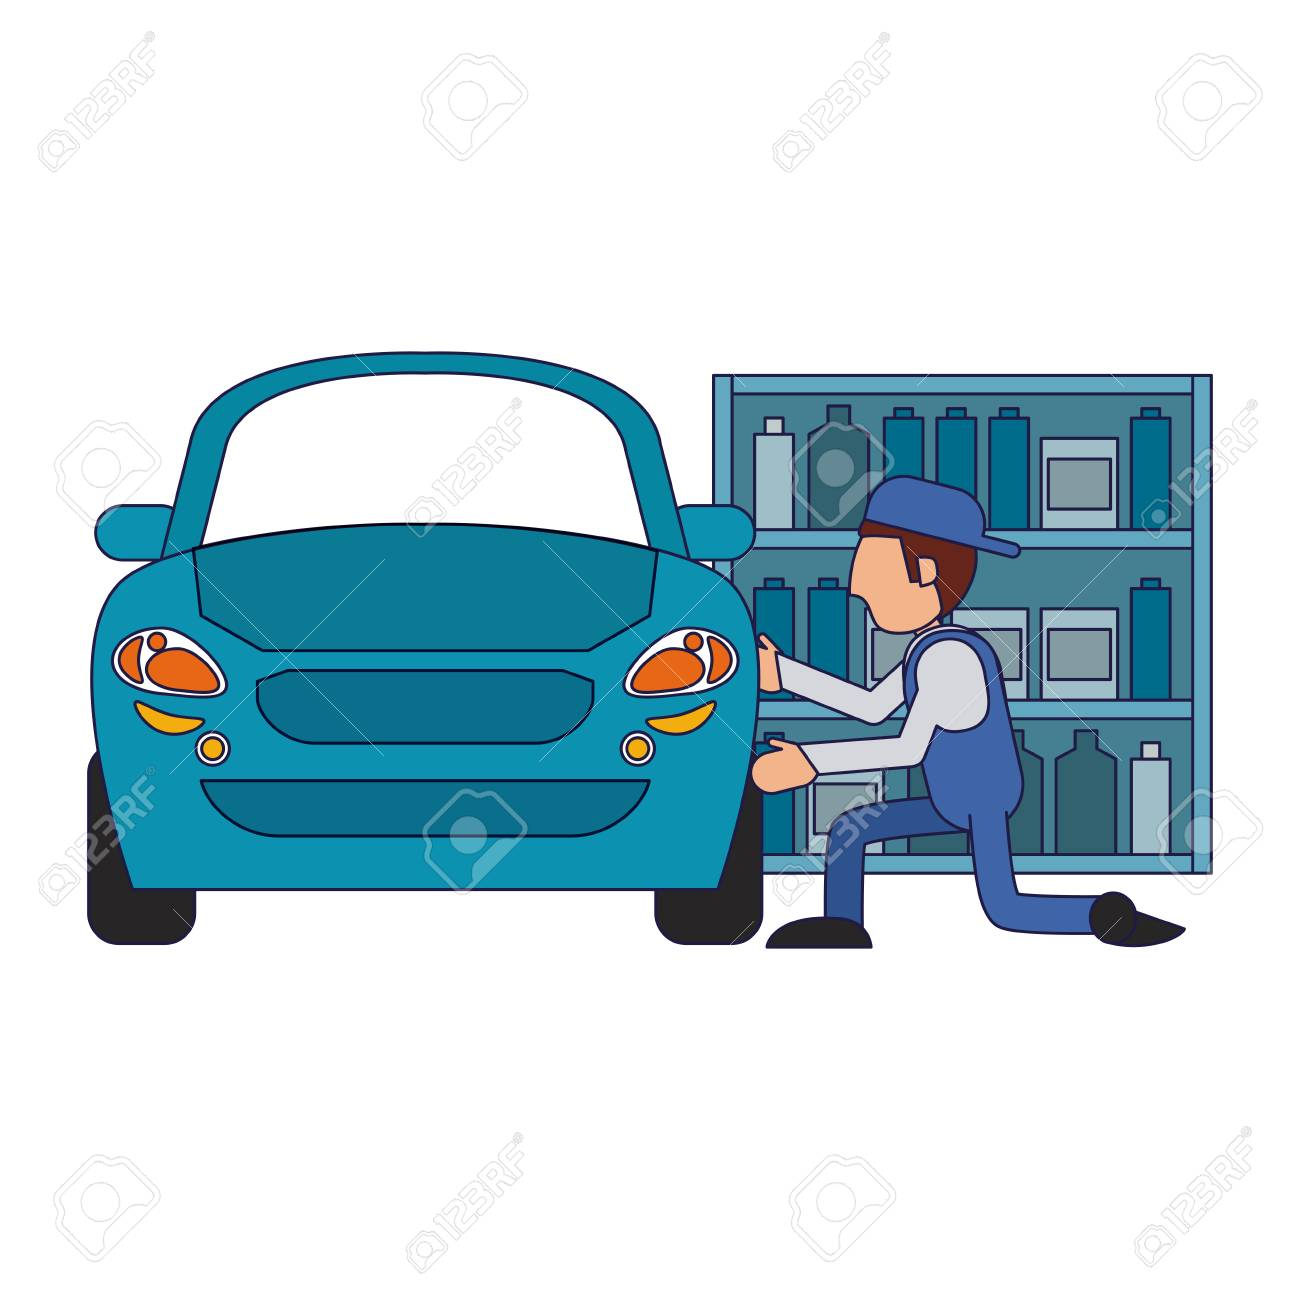 Car Mechanic Fixing Car Vehicle Vector Illustration Graphic Design Royalty Free Cliparts Vectors And Stock Illustration Image 113863150